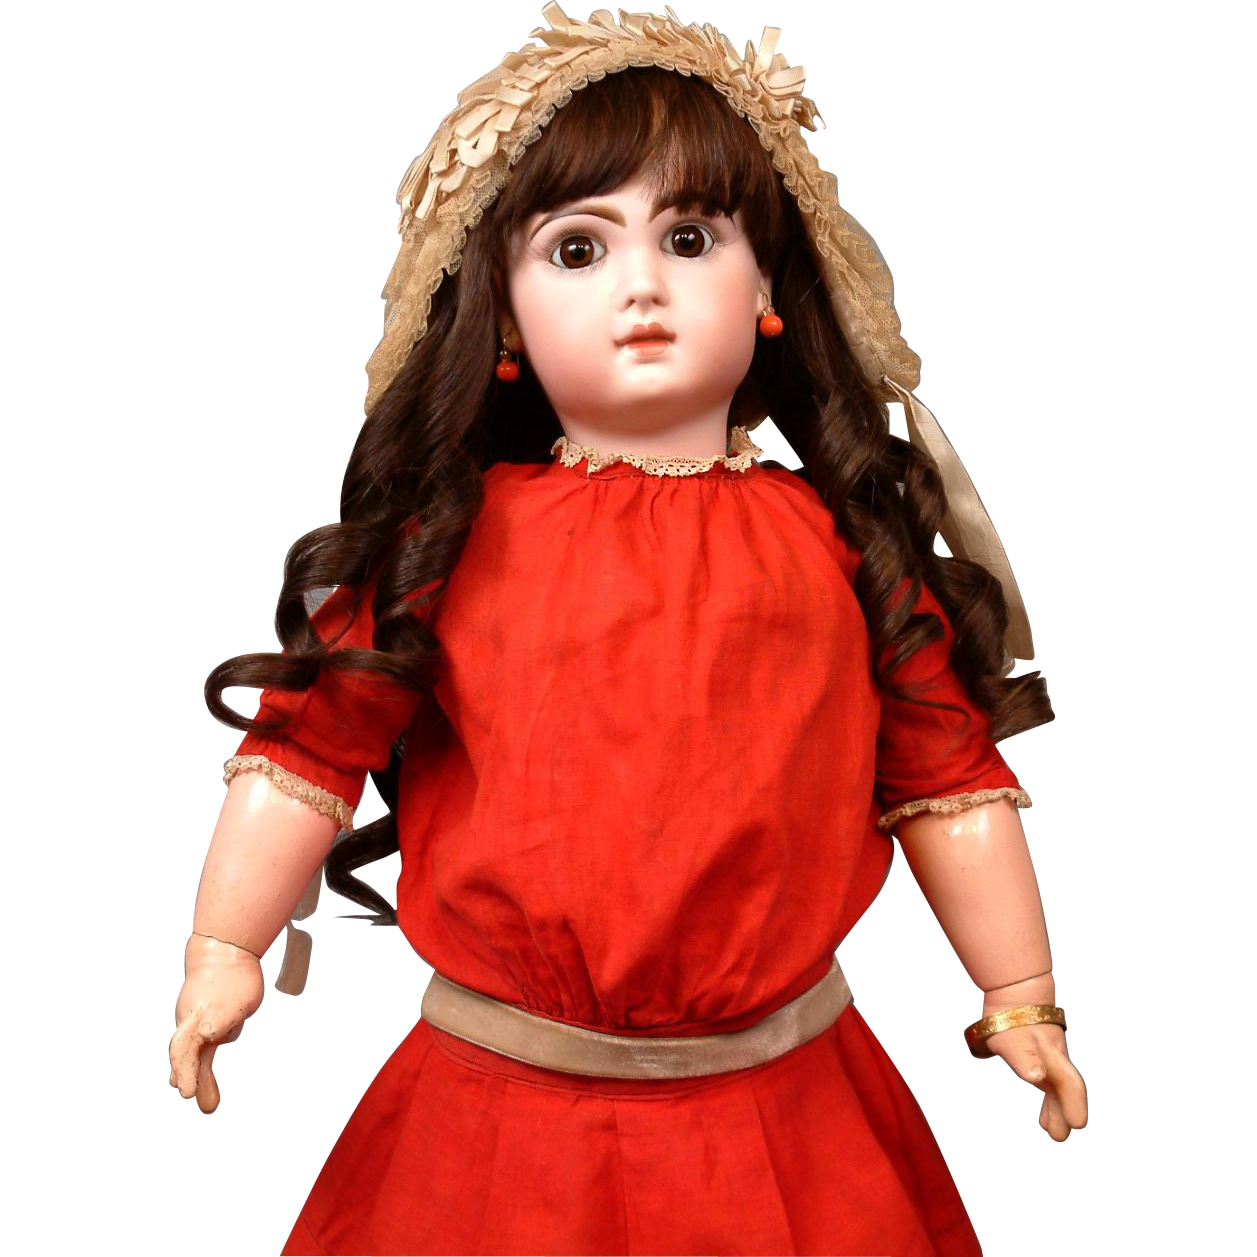 "Holly Berry Red Antique Jumeau Dress C. 1890 For Size 11 Bebe (24"")"